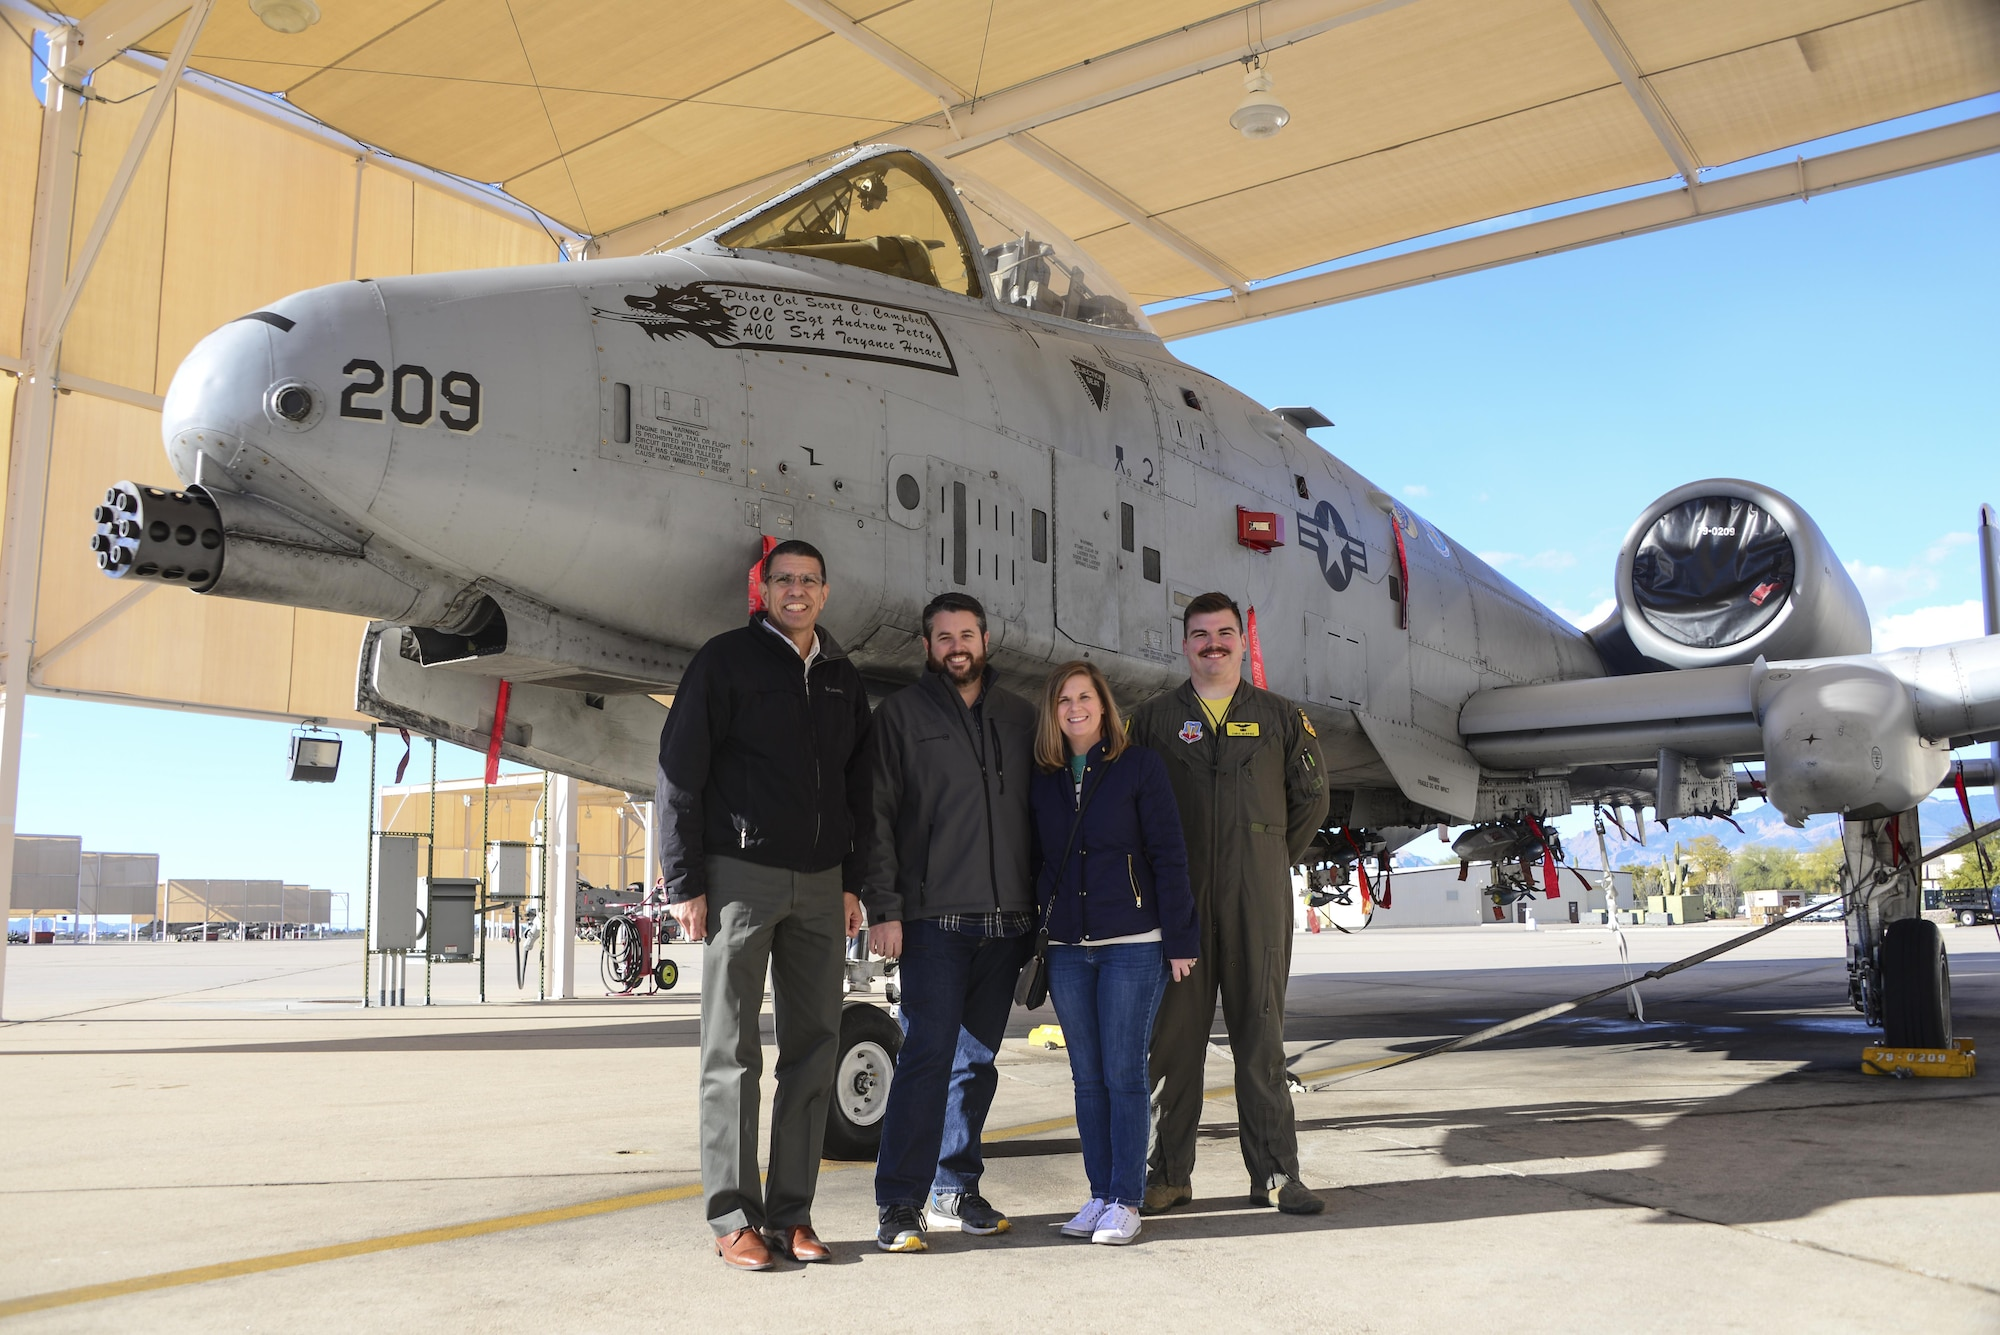 Retired U.S. Air Force Lt. Col. Gregg Montijo, Marcus Foiles, his wife Melanie, and 1st Lt. Christopher McBride, 355th Training Squadron A-10 pilot, pose for a photo on the flight line at Davis-Monthan Air Force Base, Ariz., Jan. 27, 2017. Foiles was 10 years old in 1989 when he was granted a trip to D-M via the Make-A-Wish Foundation after being diagnosed with leukemia. Foiles made the trip back to D-M to reconnect with Montijo, the pilot who hosted the tour 28 years ago. (U.S. Air Force photo by Airman 1st Class Nathan H. Barbour)